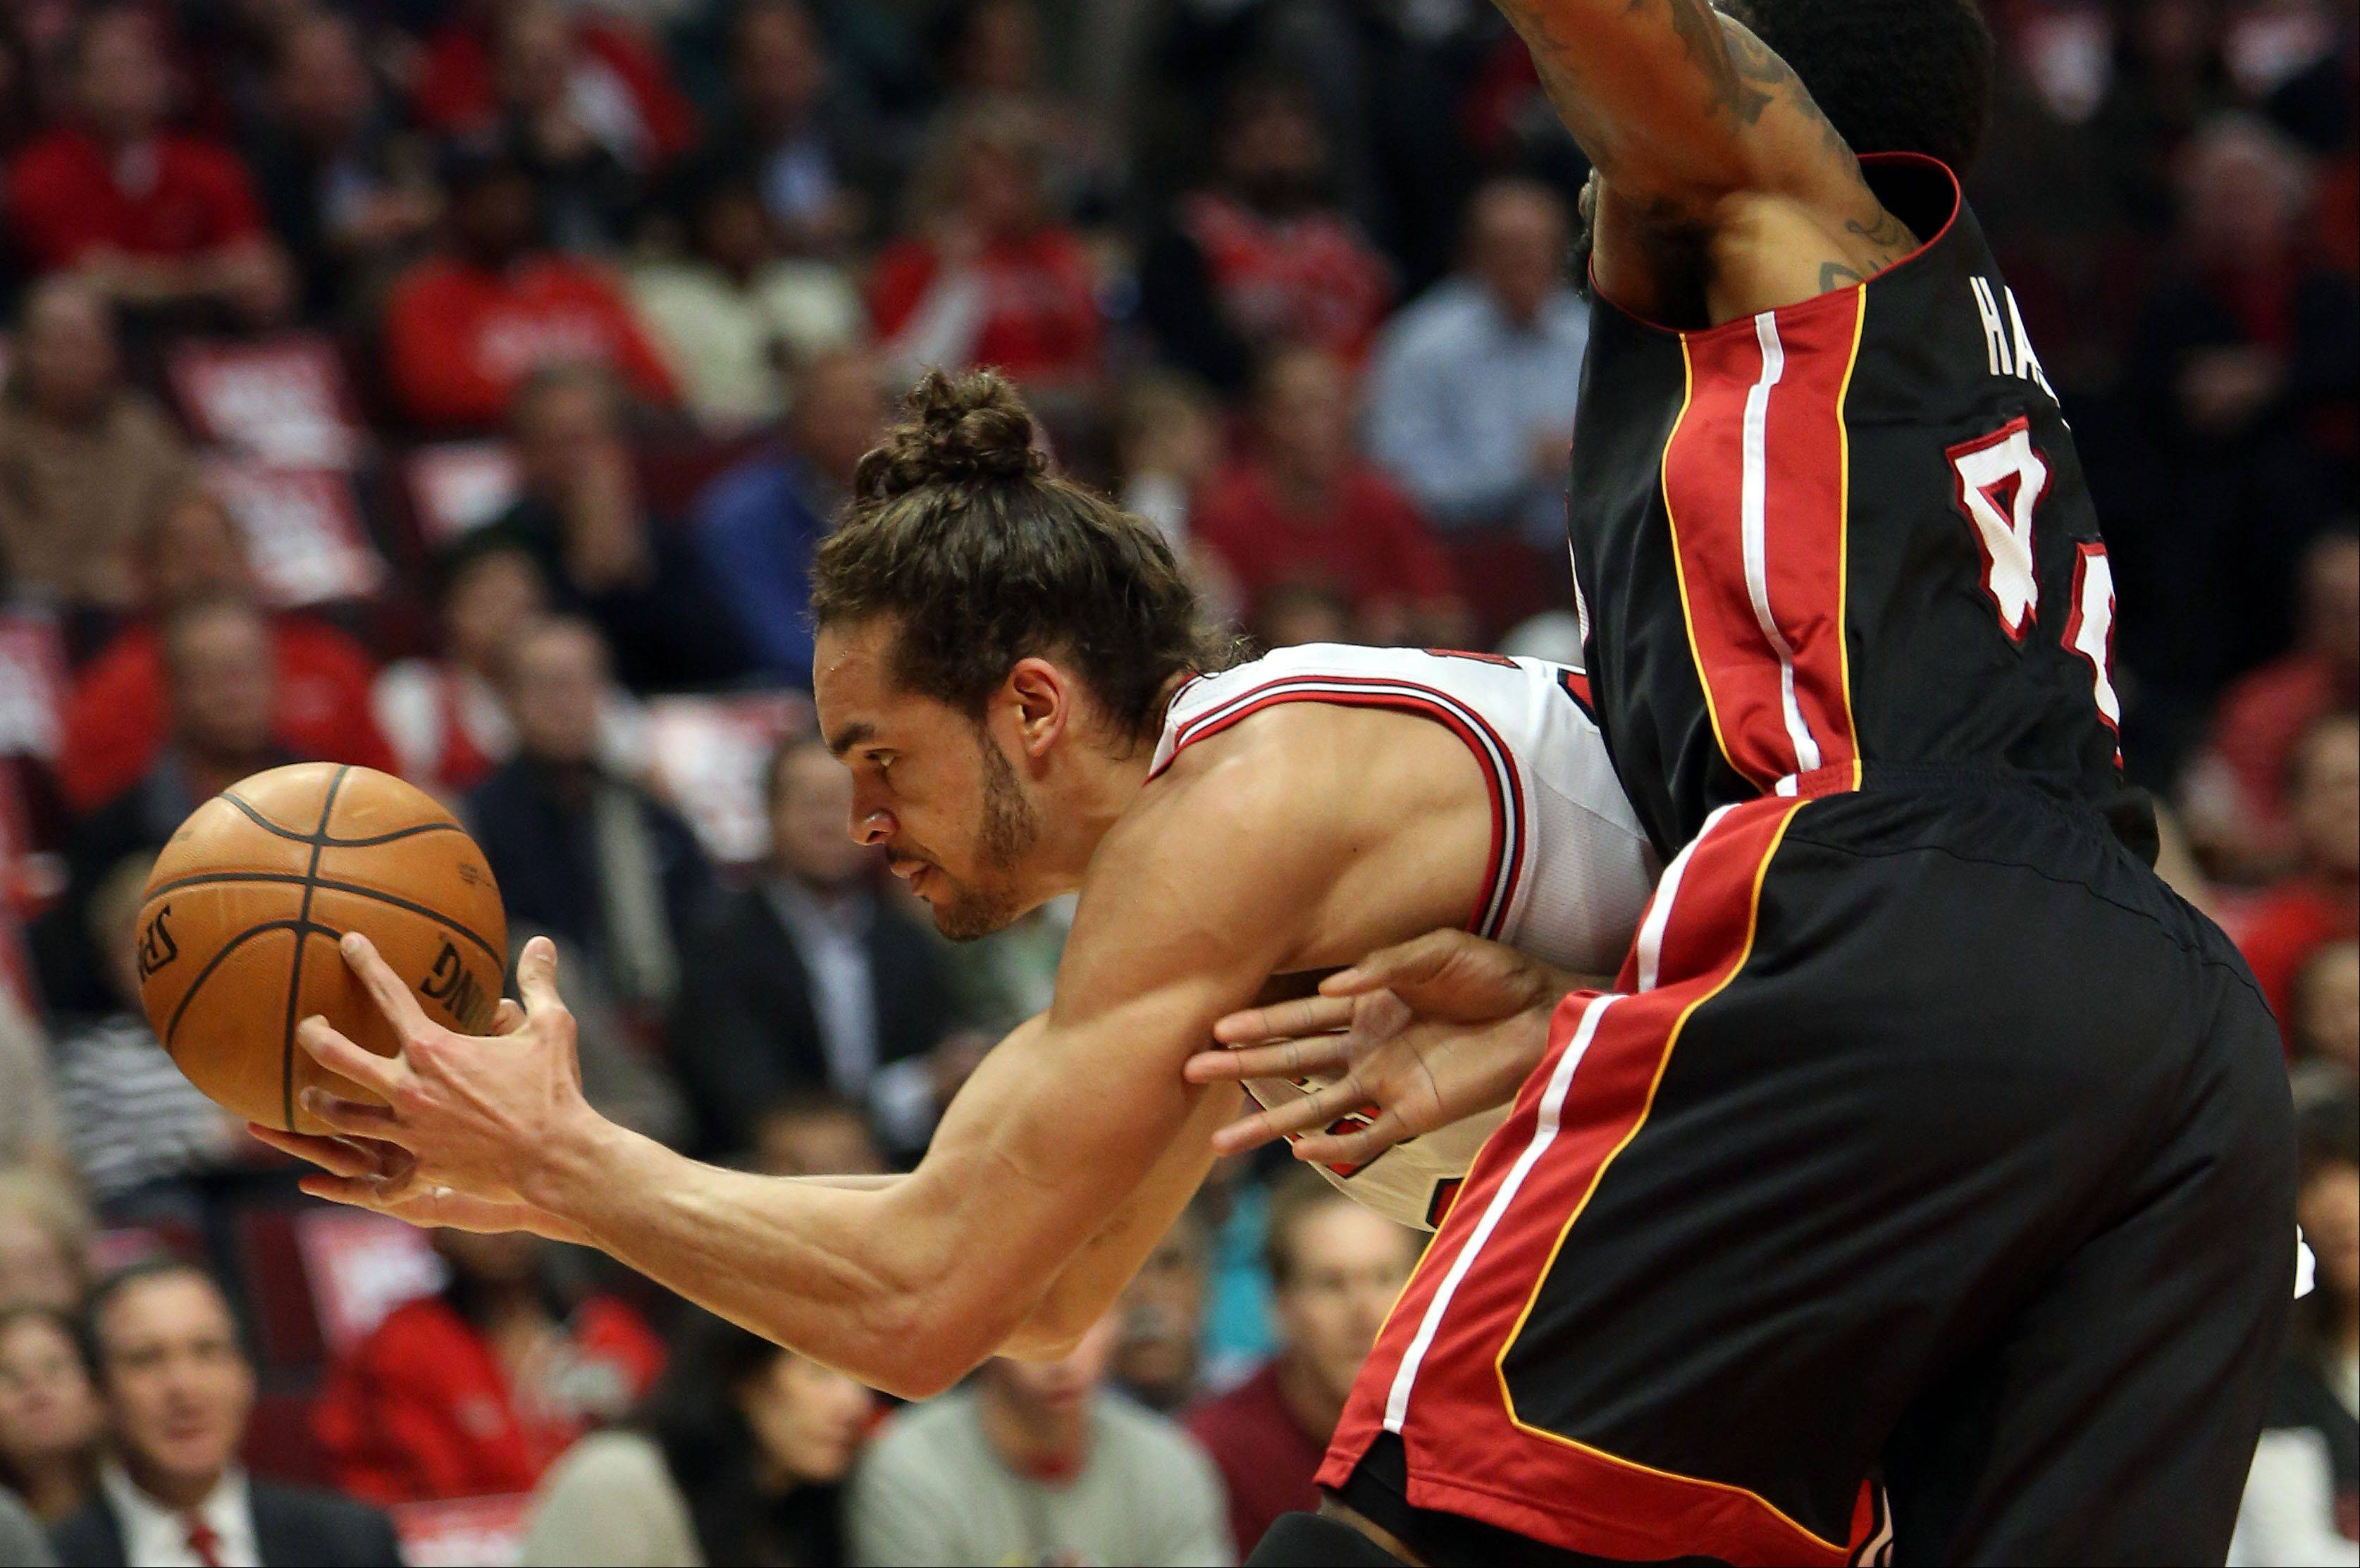 Chicago Bulls center Joakim Noah battles for a rebound with Miami Heat power forward Udonis Haslem .